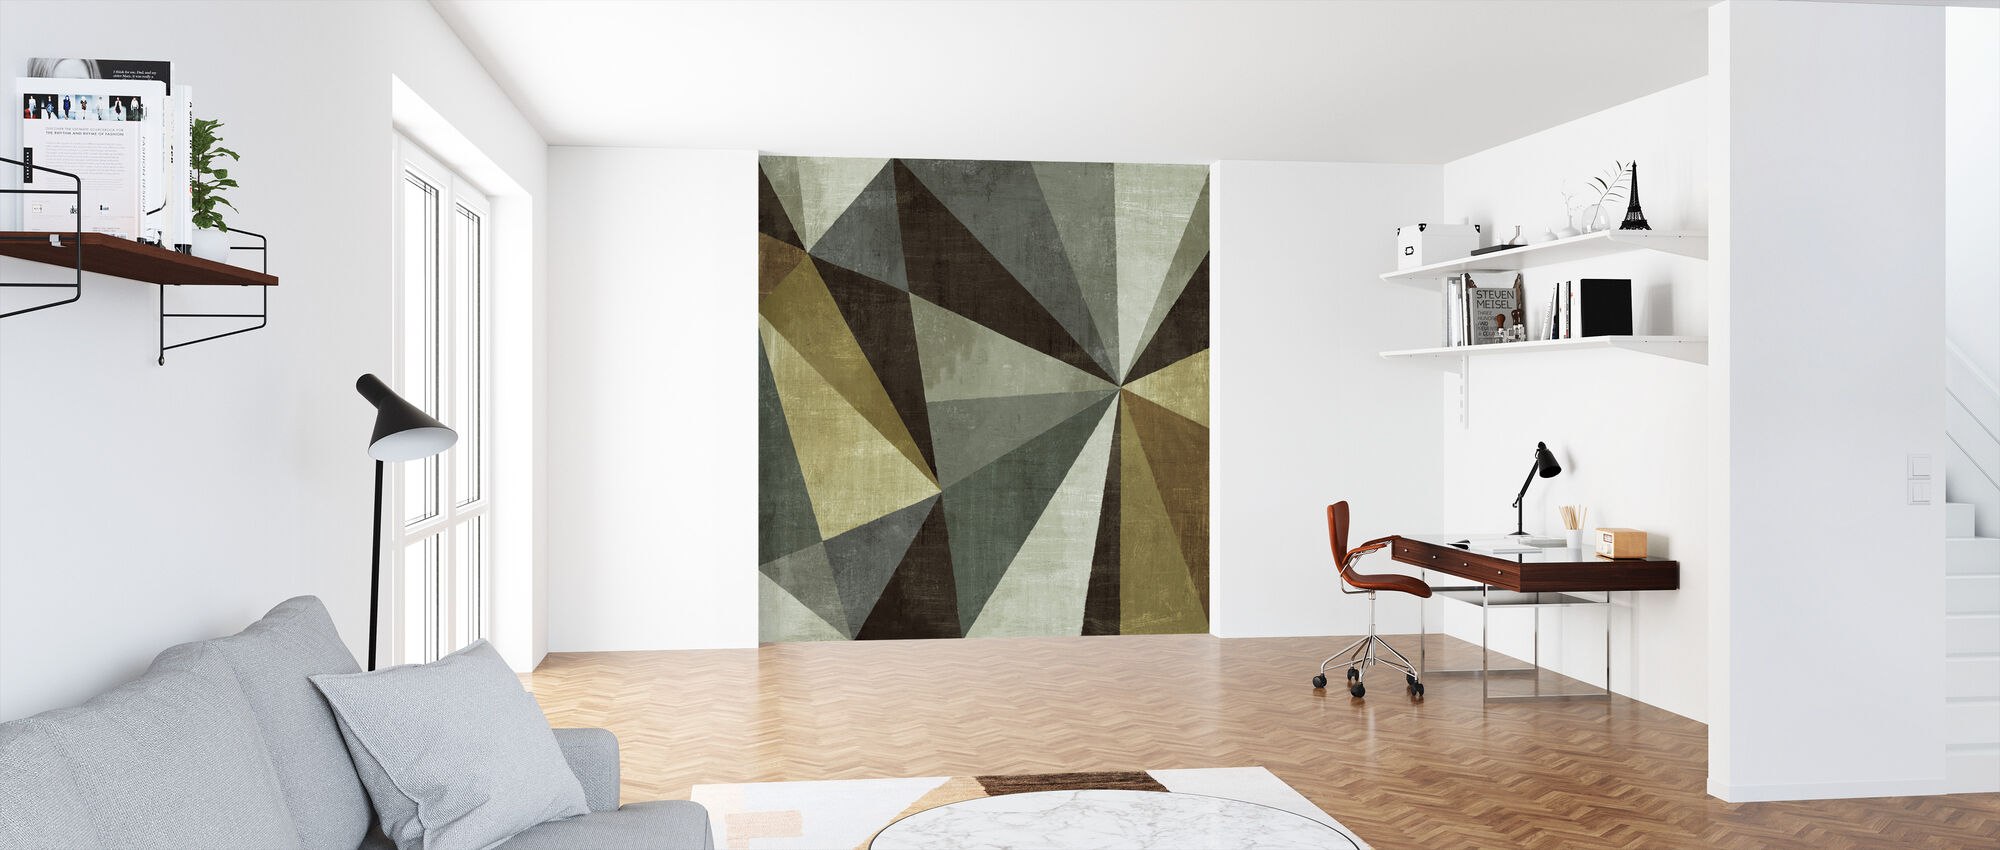 Triangulawesome - Wallpaper - Office